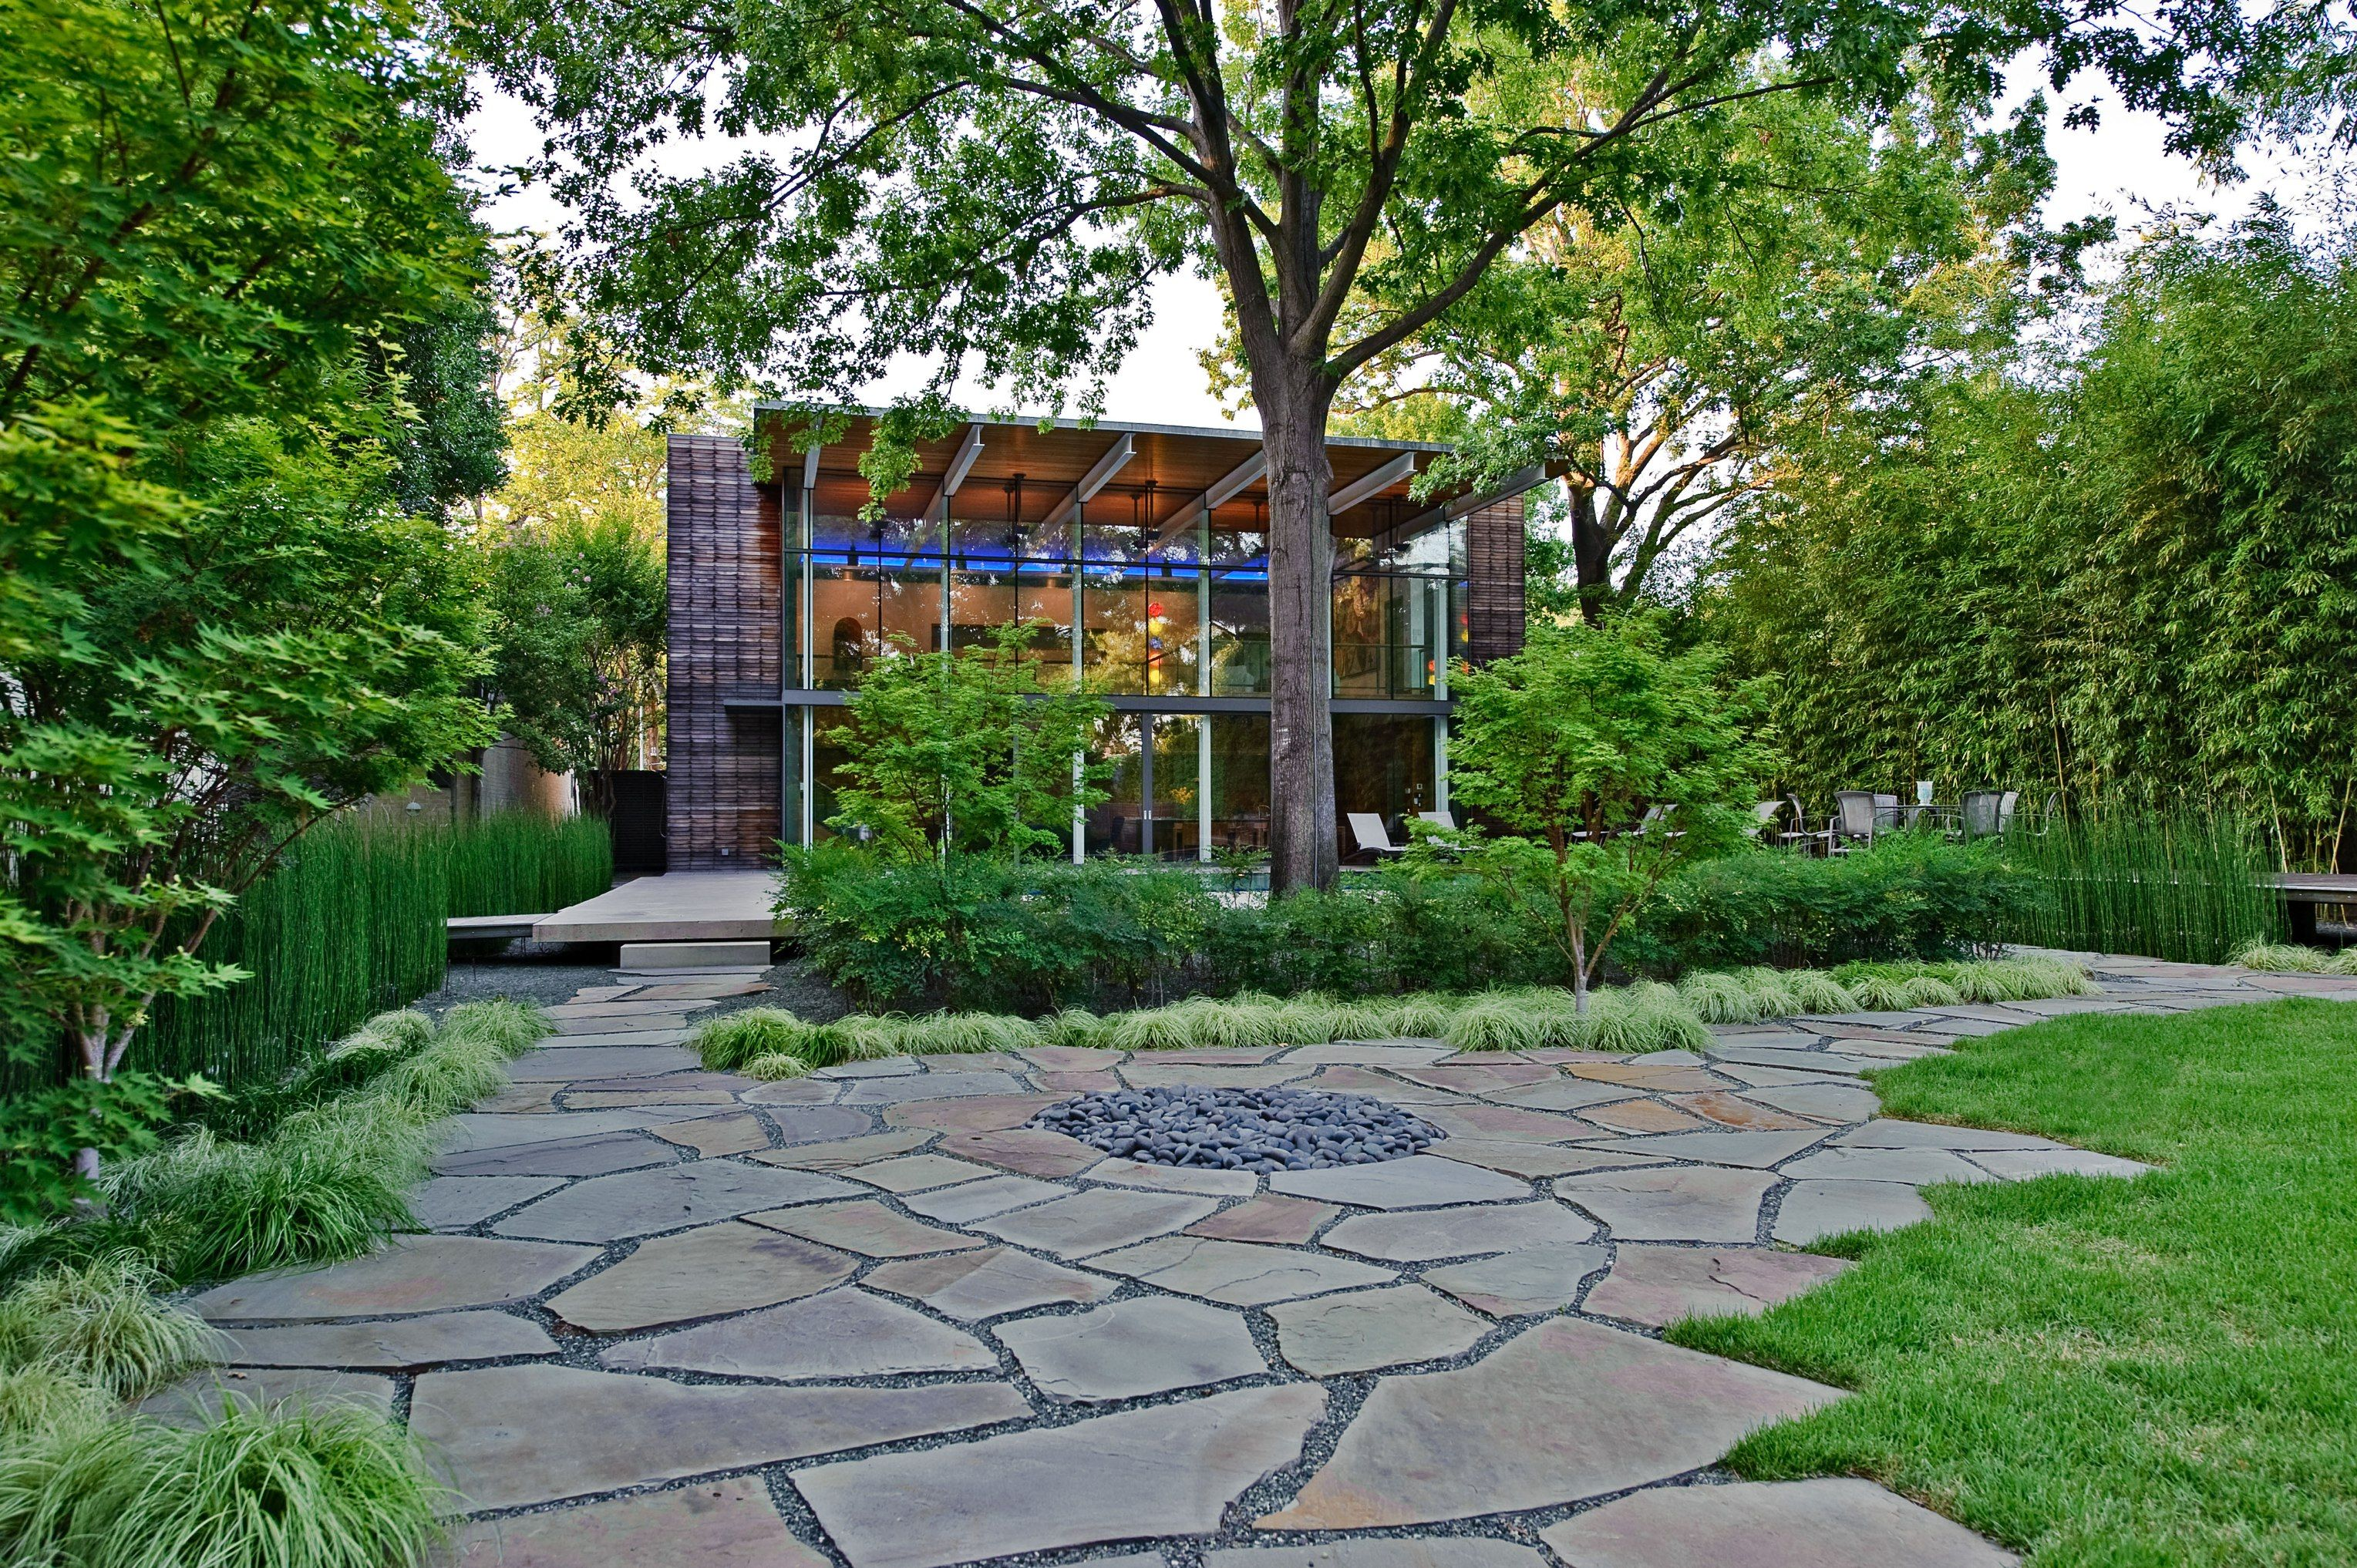 hocker design group / pool house, dallas | My eye view | Pinterest ...